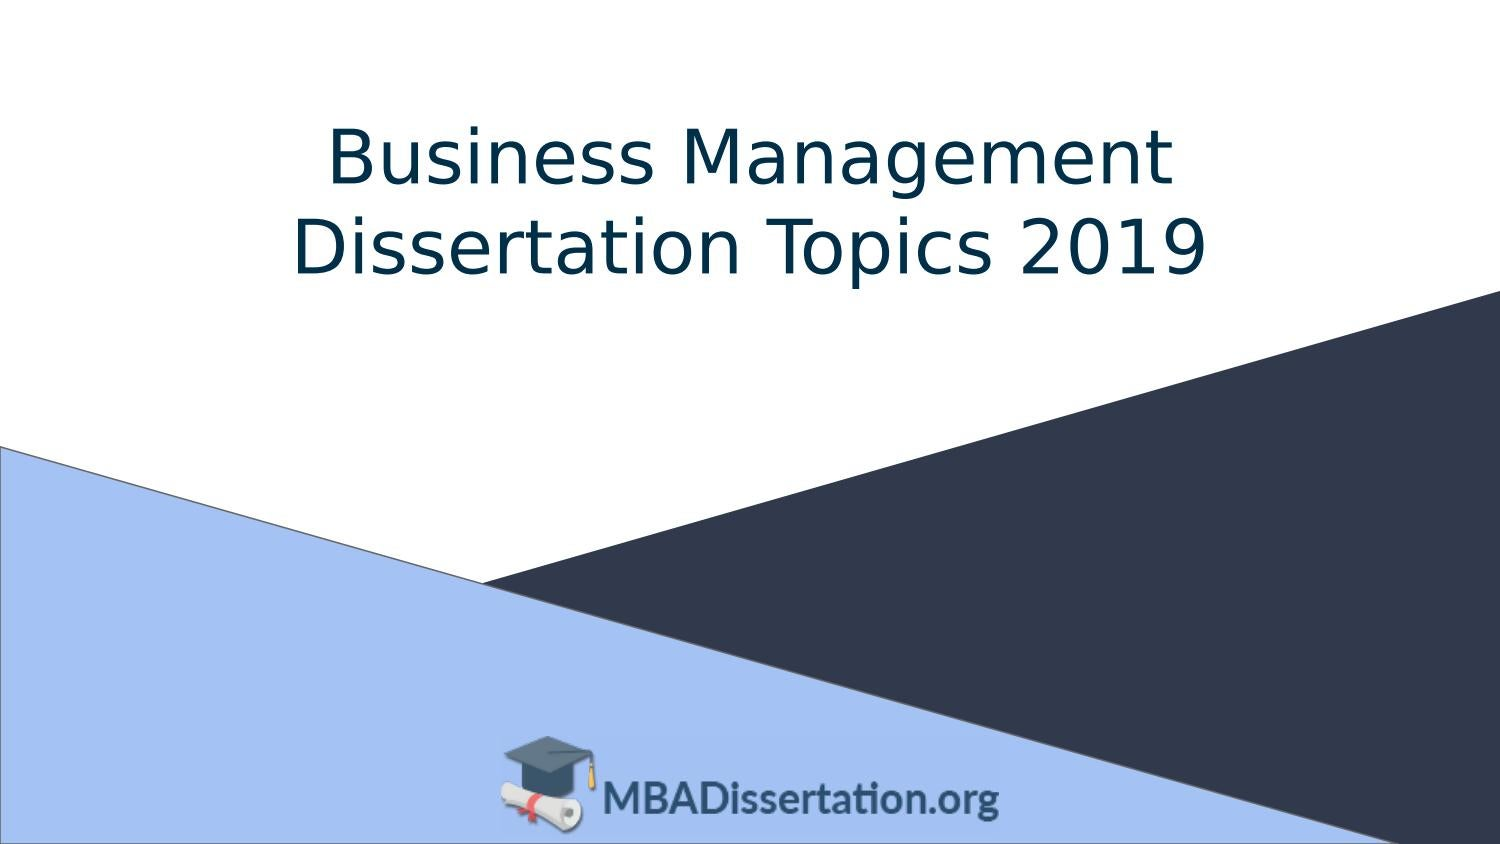 Dissertation business management topics cheap critical thinking ghostwriter website for phd